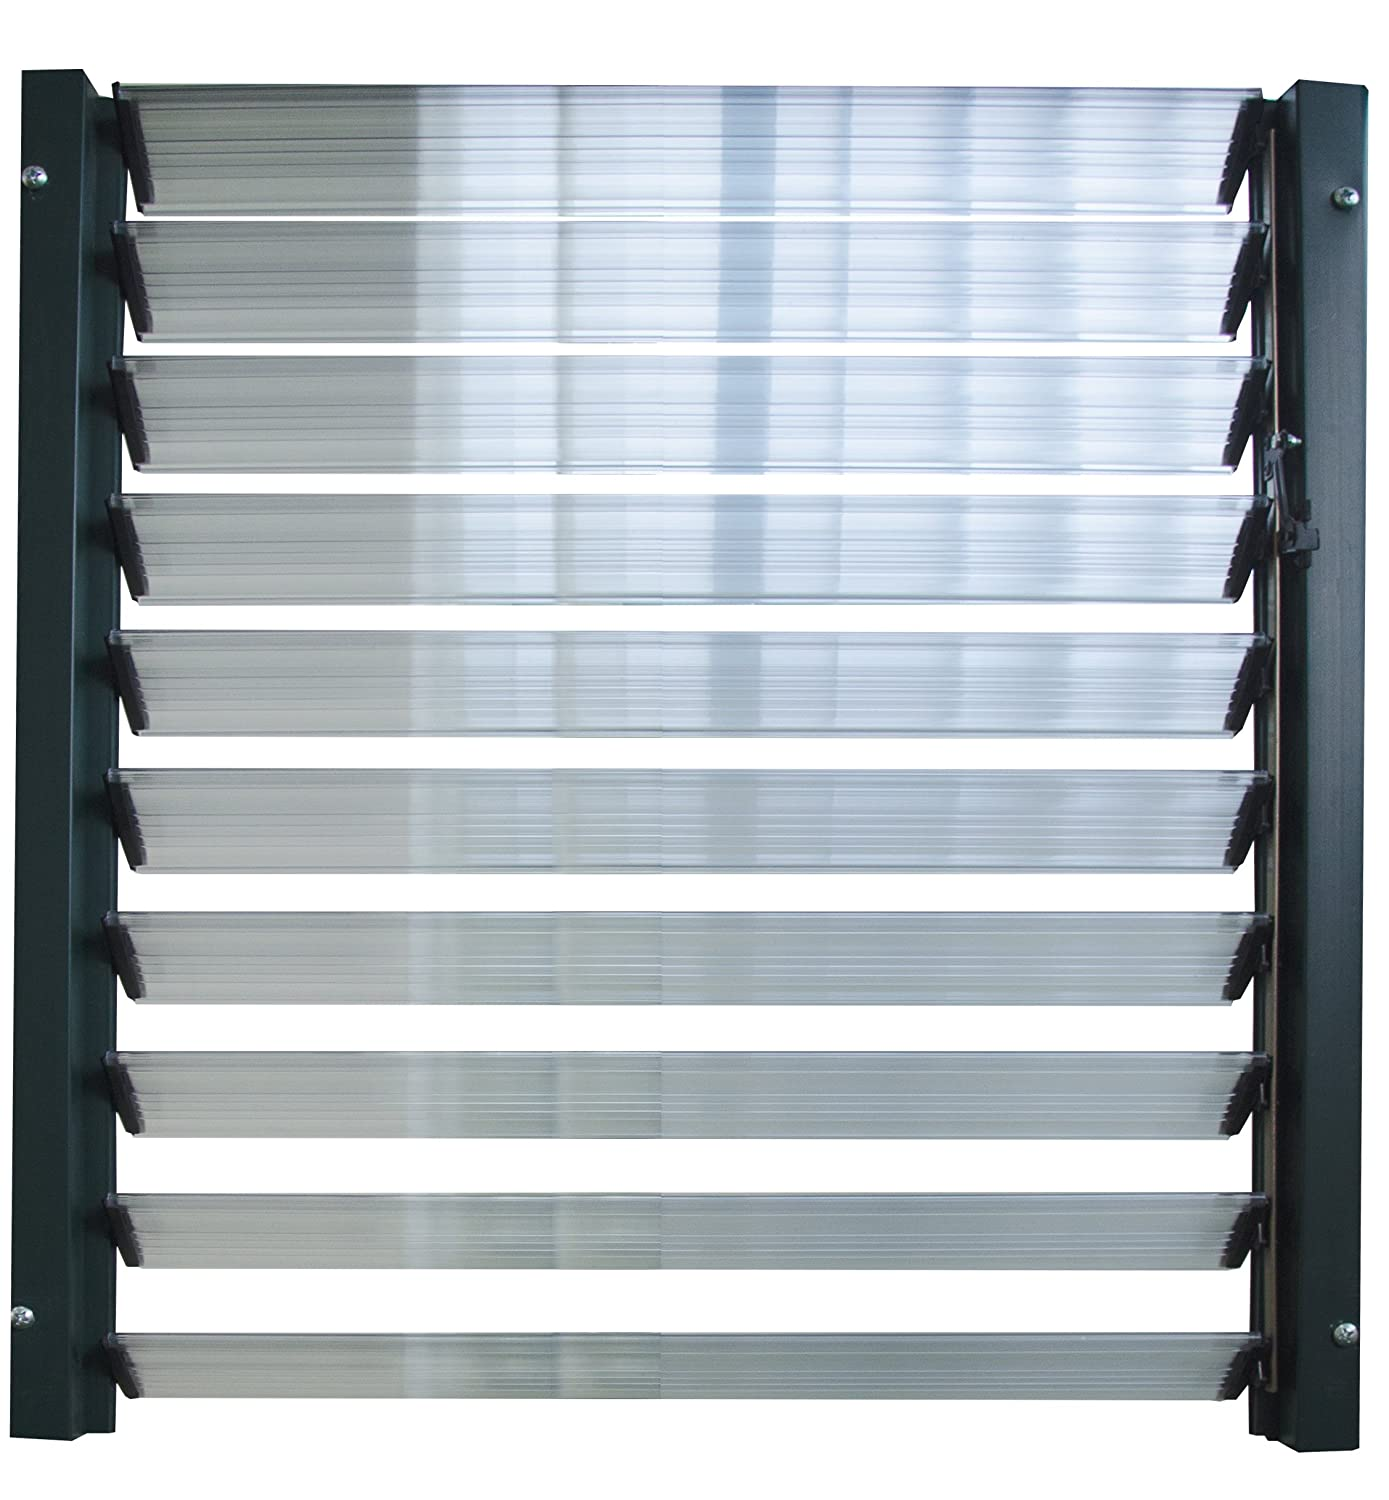 Rion Side Louver Window HG1032